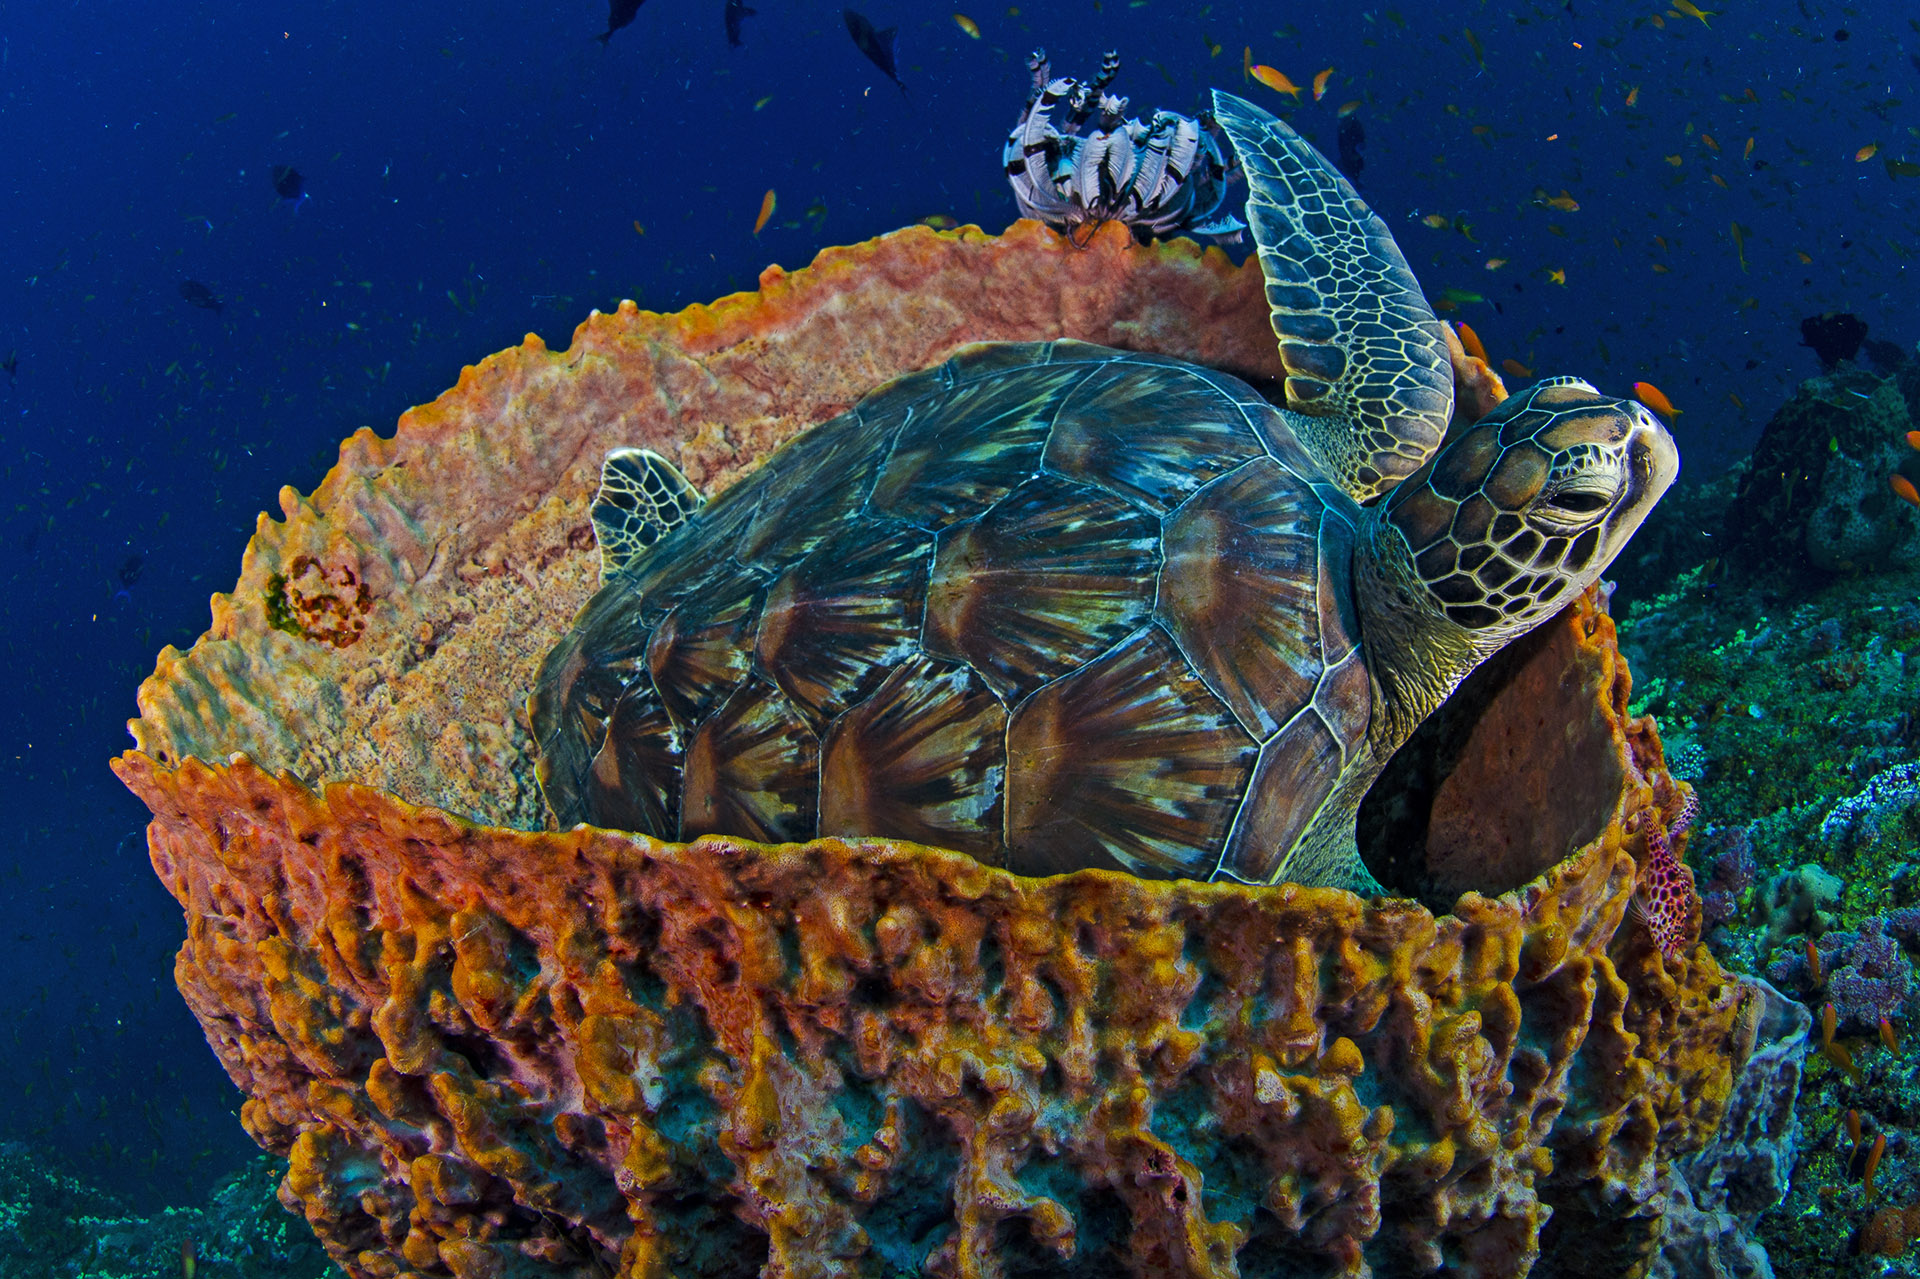 Dhritiman is also a keen scuba diver and has photographed the marine herpetofauna of the Andamans and Nicobar Islands, as well as its other inhabitants. This green sea turtle was photographed at a reef near Havelock. Photographing underwater comes with its own set of rules, but the most important one remains the same: Always put the animal first. Photo: Dhritiman Mukherjee